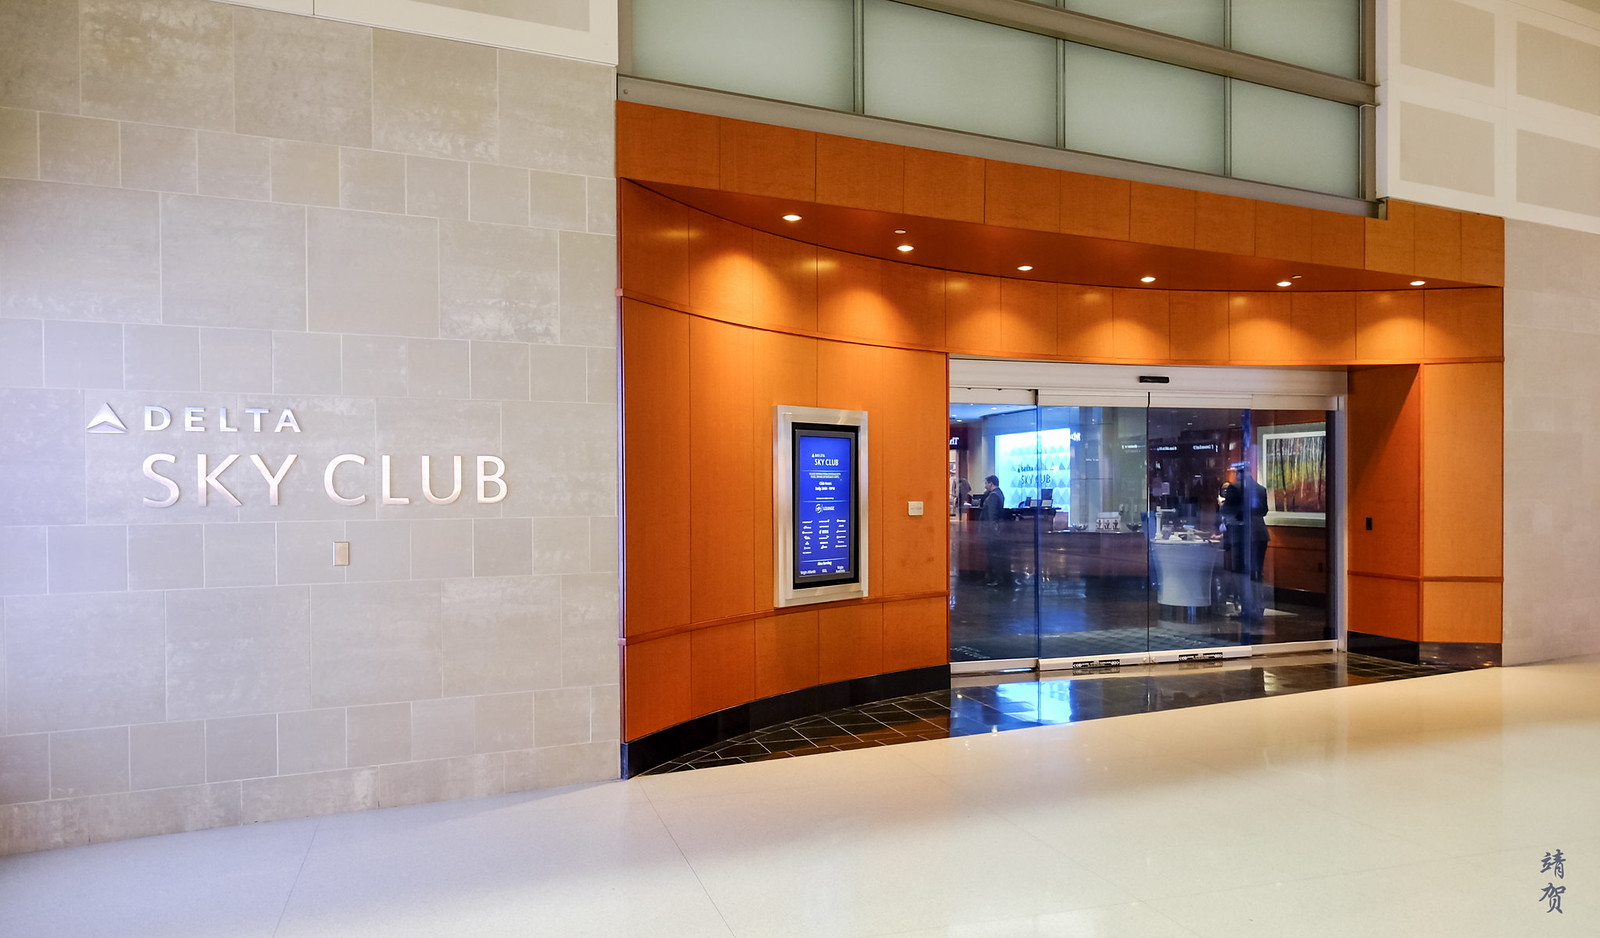 Delta Sky Club main entrance